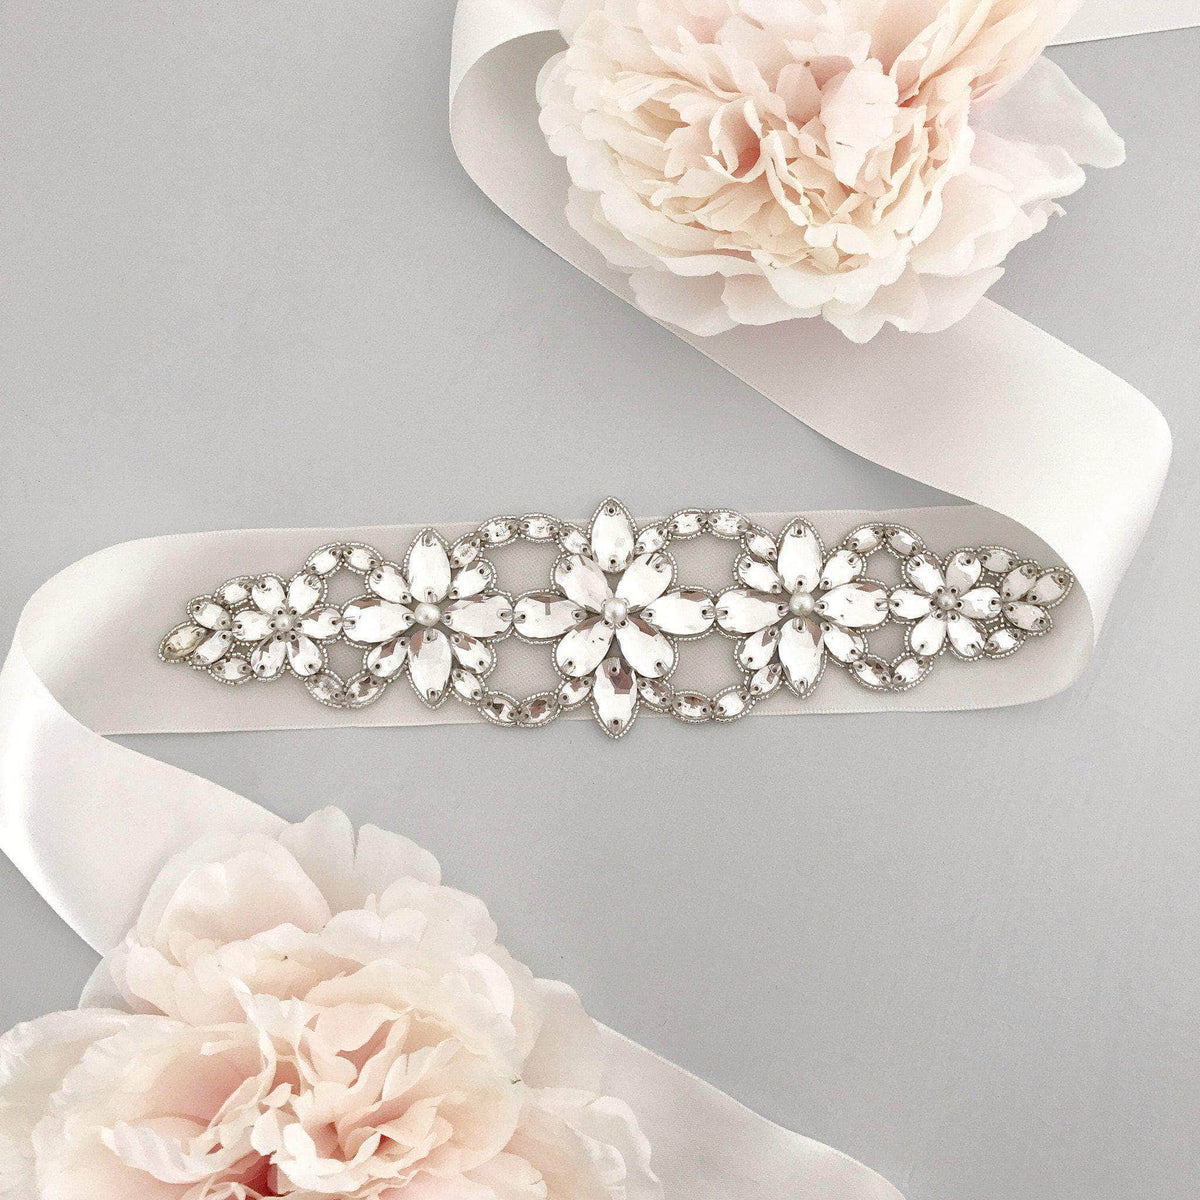 statement wedding belt